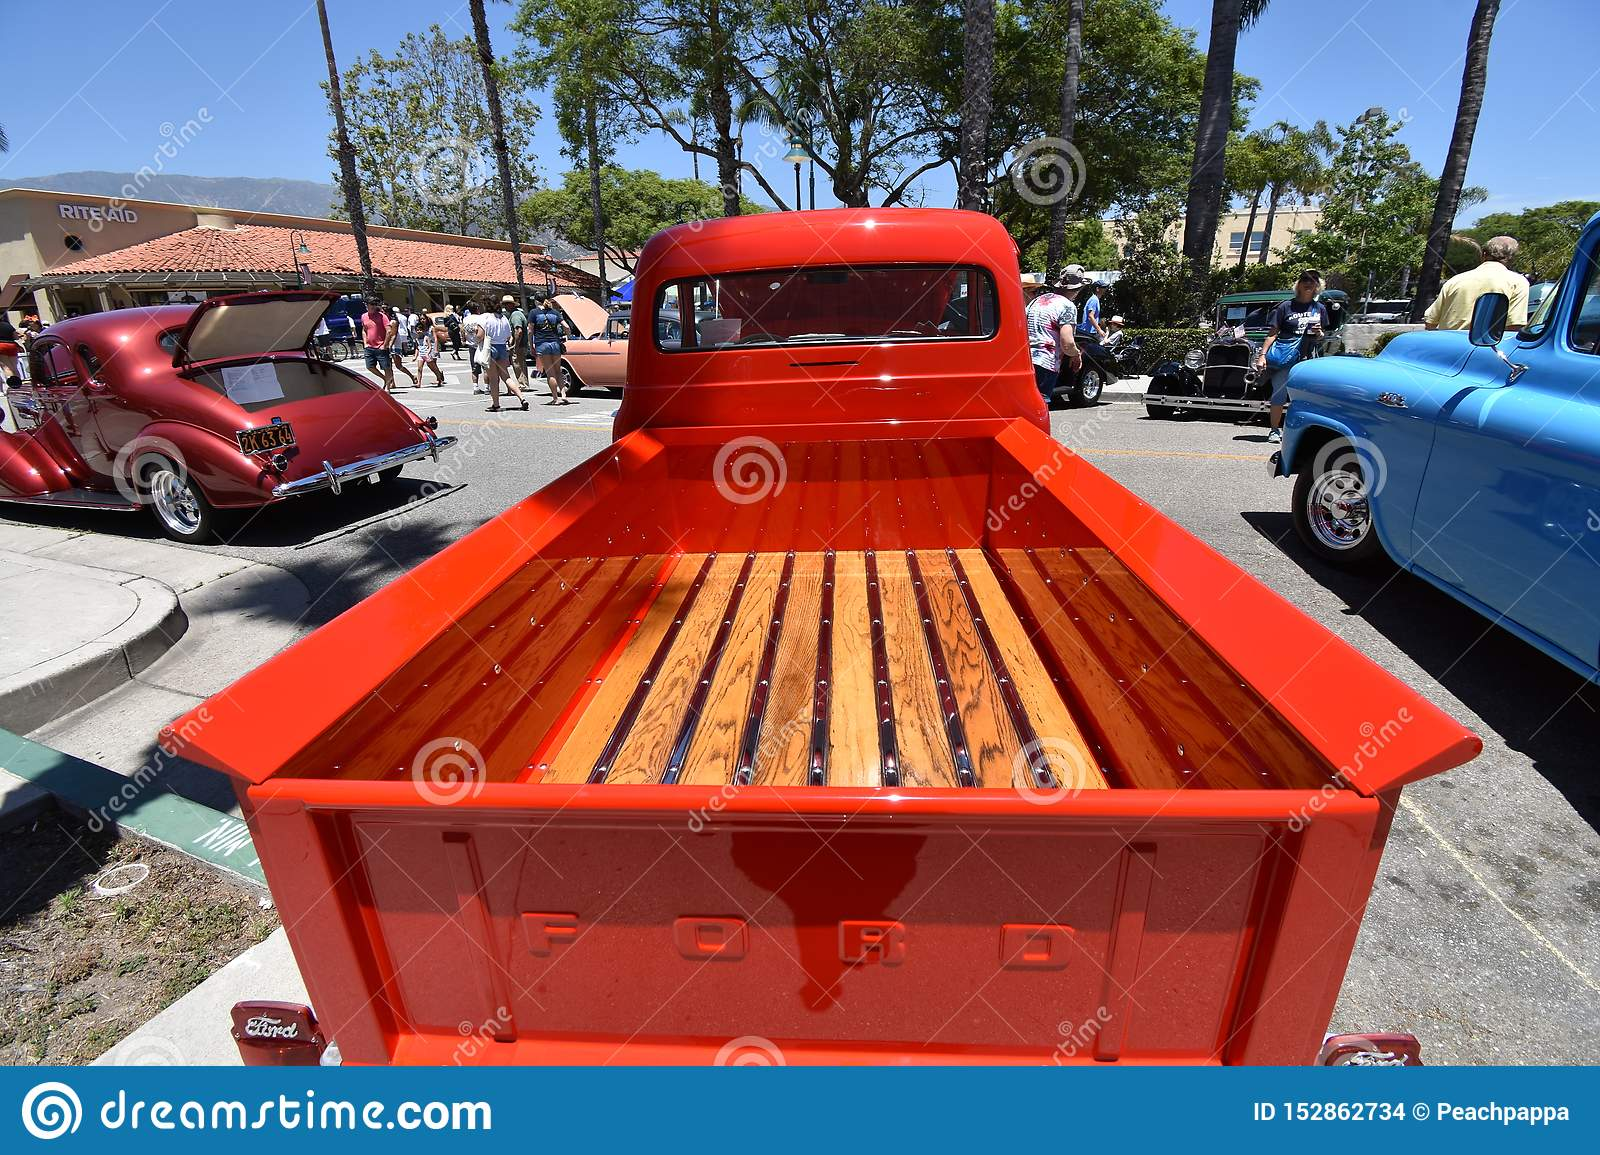 110 Orange Pick Up Truck Photos Free Royalty Free Stock Photos From Dreamstime